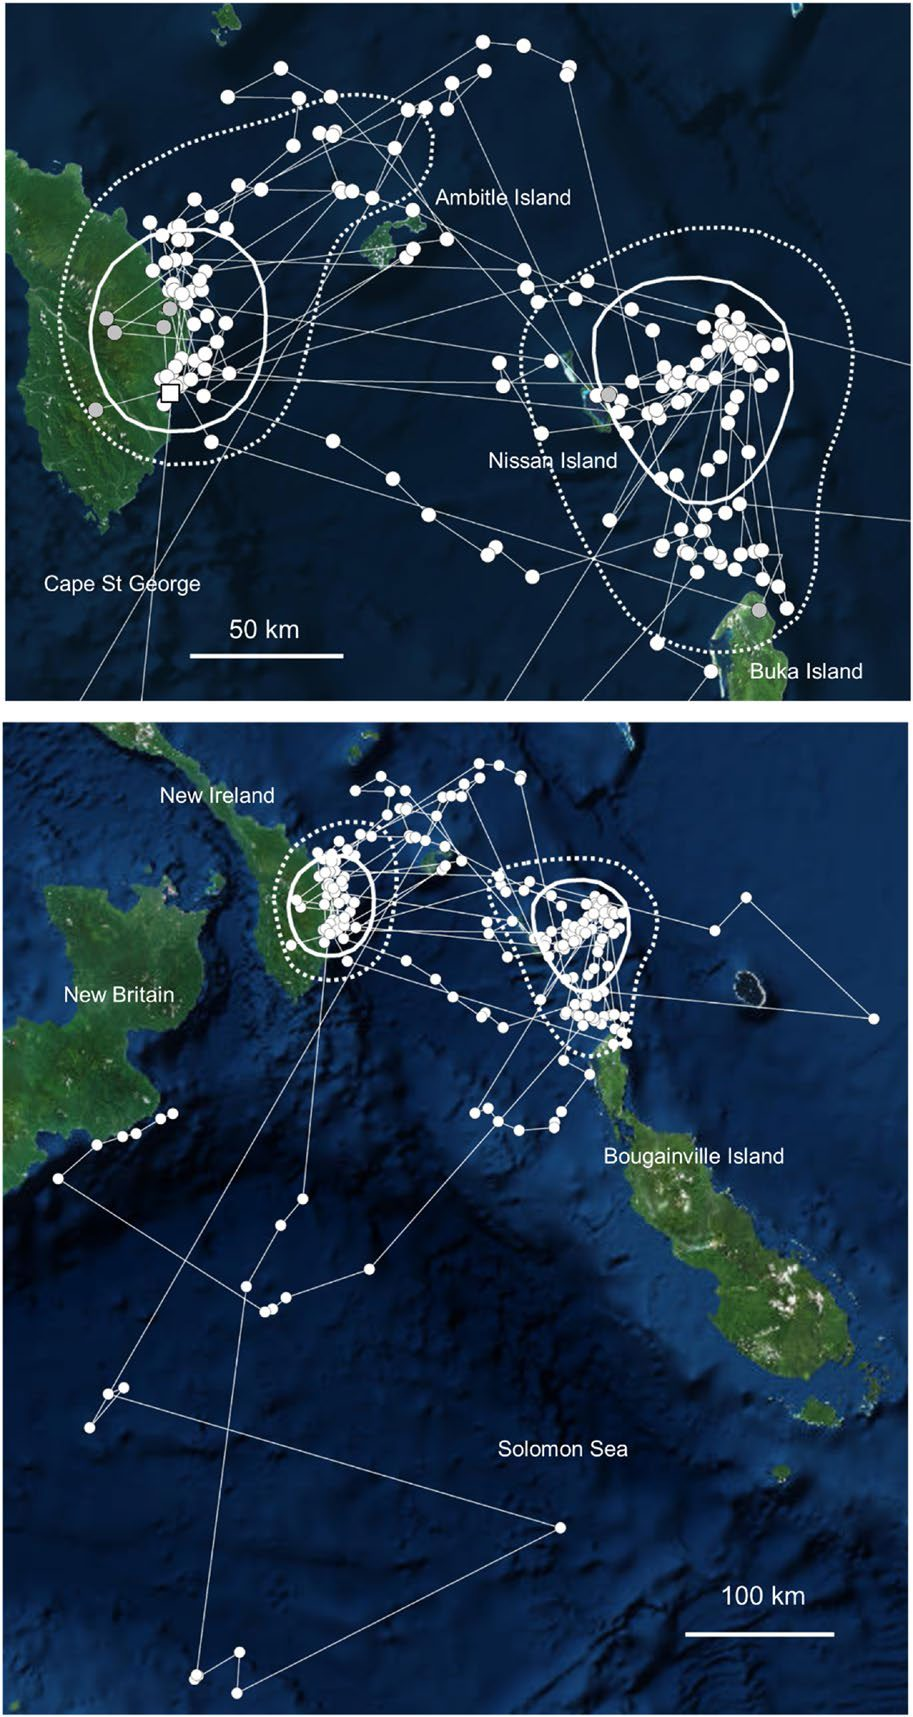 Movements of a tracked Becks Petrel tagged between the 26th April and 26th August 2017, showing core areas (A: 25% kernel, solid line; 50%, hashed line) and all locations during this period (B). Capture location marked by white square. Overland validated locations marked as grey. Map source: ESRI, Digiglobe, GeoEye, Earth Star Geographics, CNES/Airbus DS, USDA, USGS, Aerogrid, IGN, and the GIS user community; reproduced from [Rayner et al., 2020] with permission